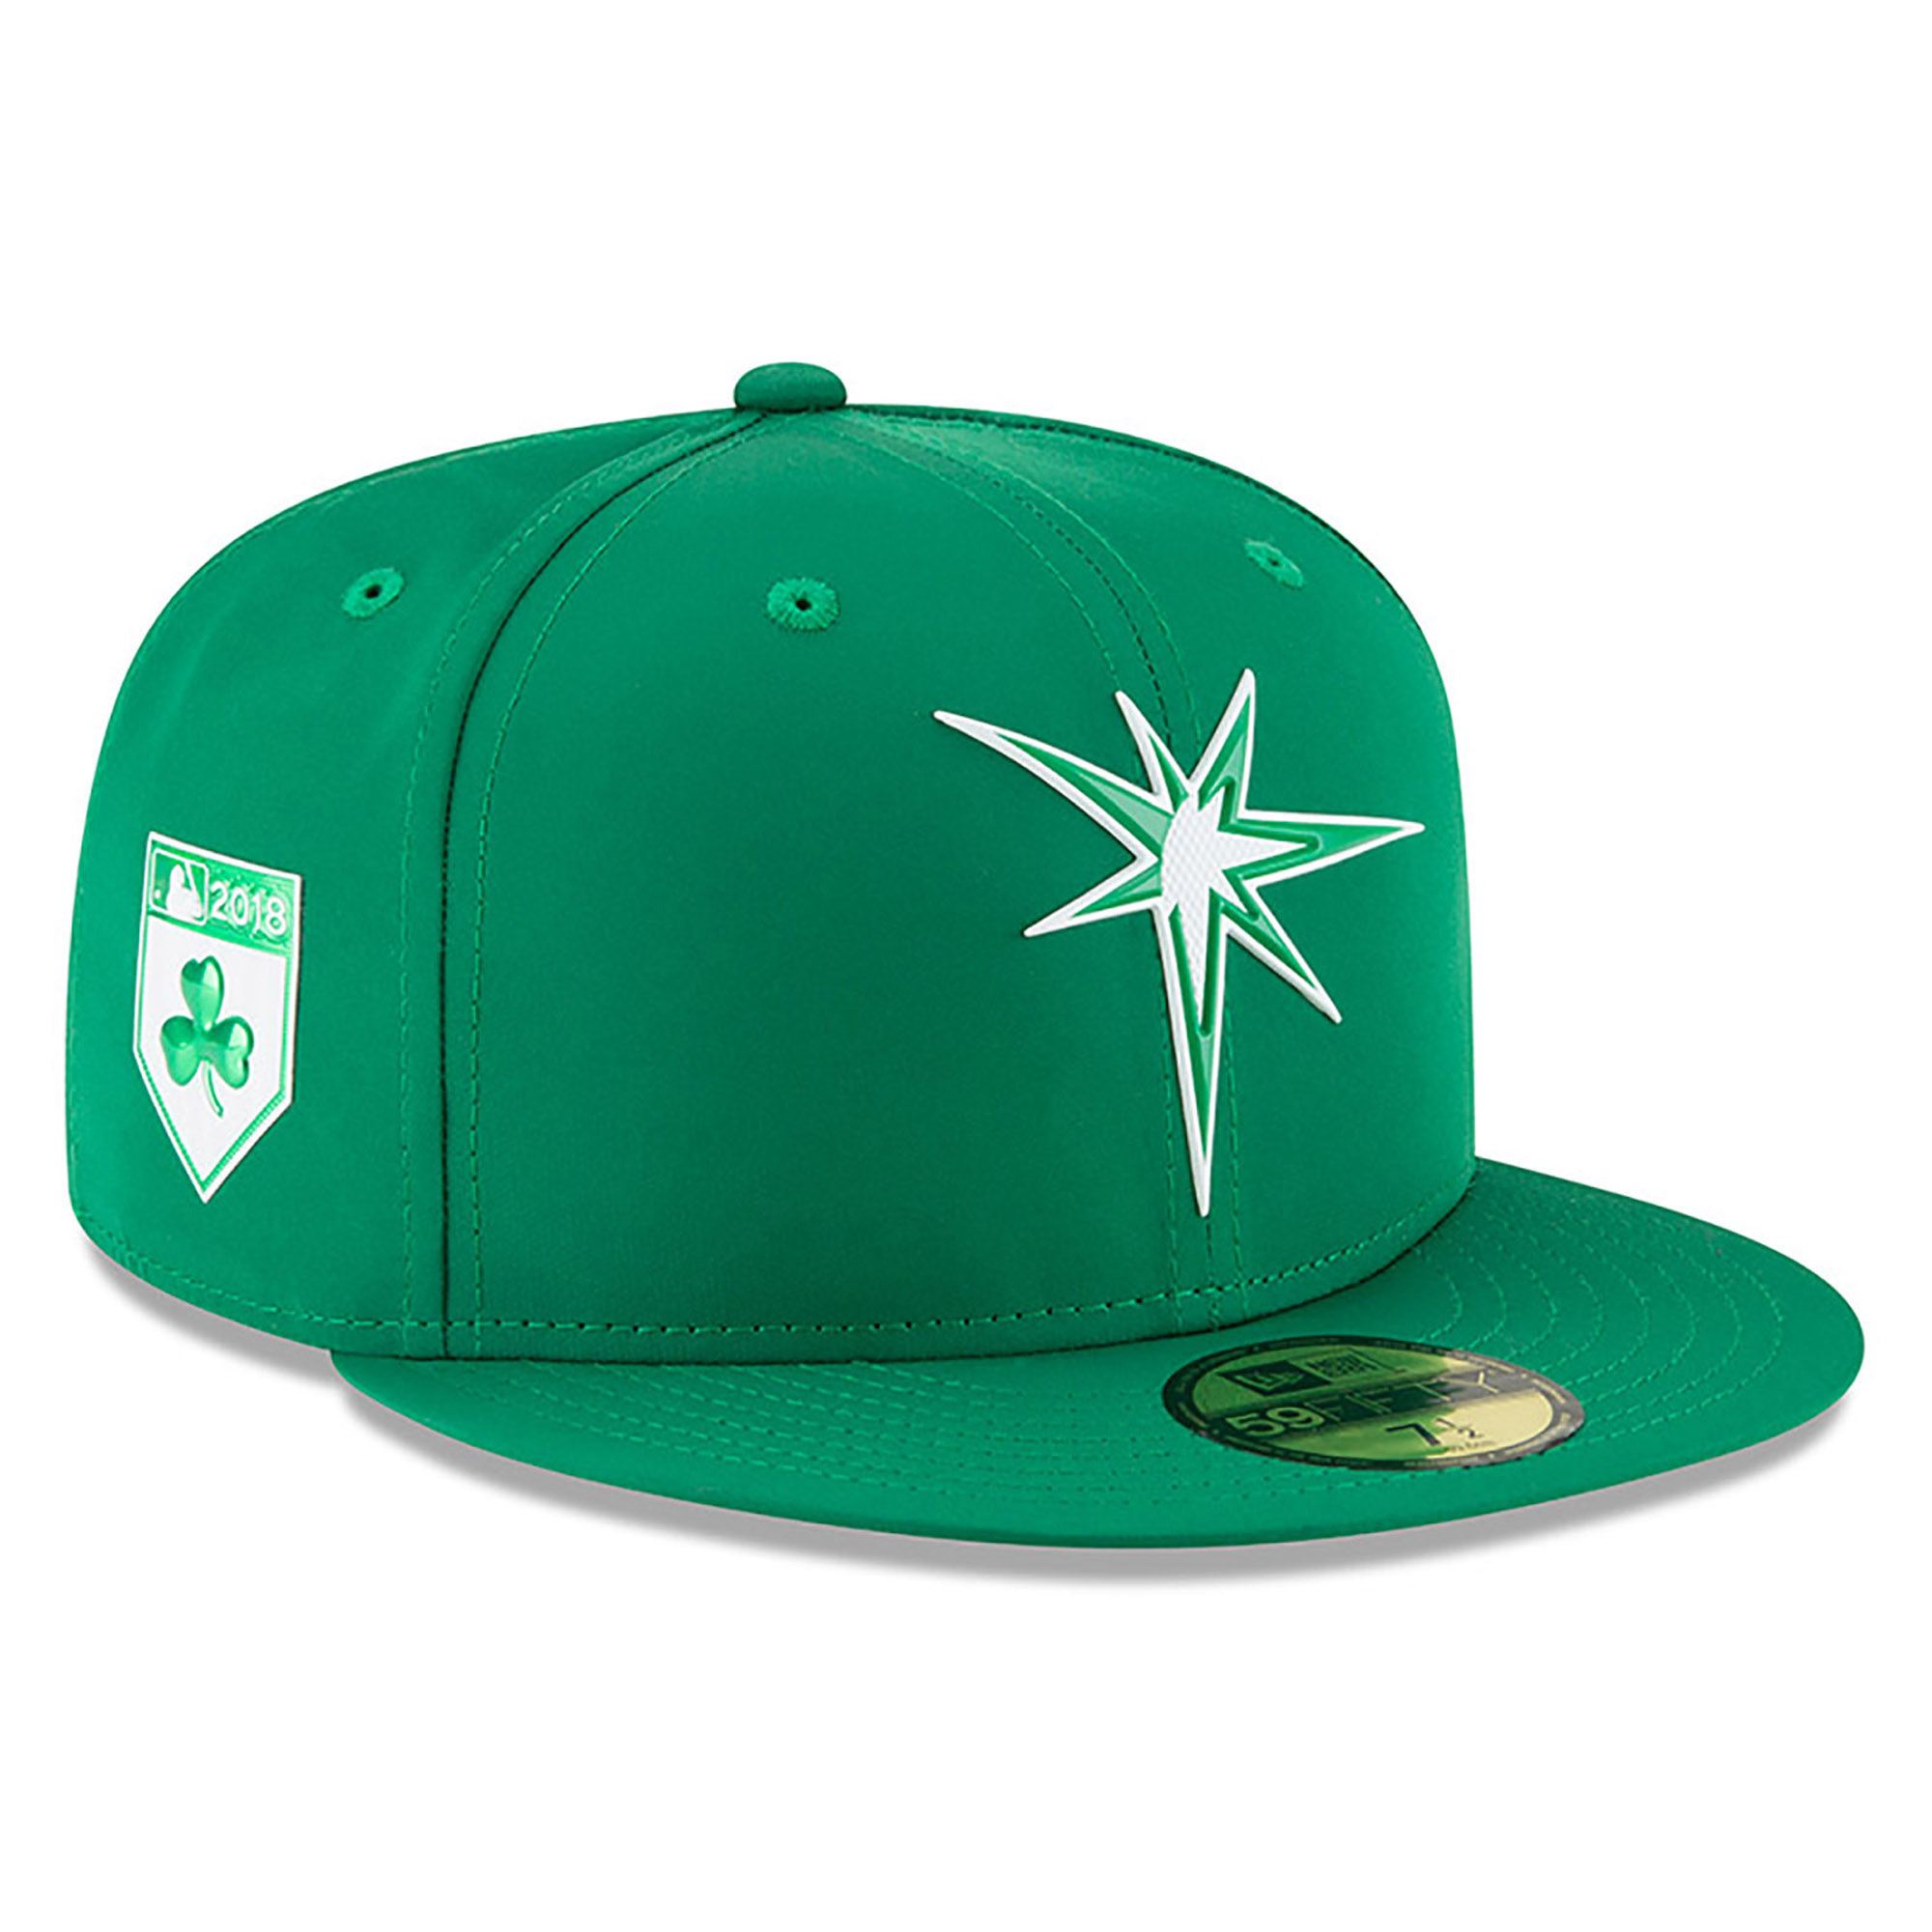 Tampa Bay Rays New Era 2018 St. Patrick's Day Prolight 59FIFTY Performance Fitted Hat - Green